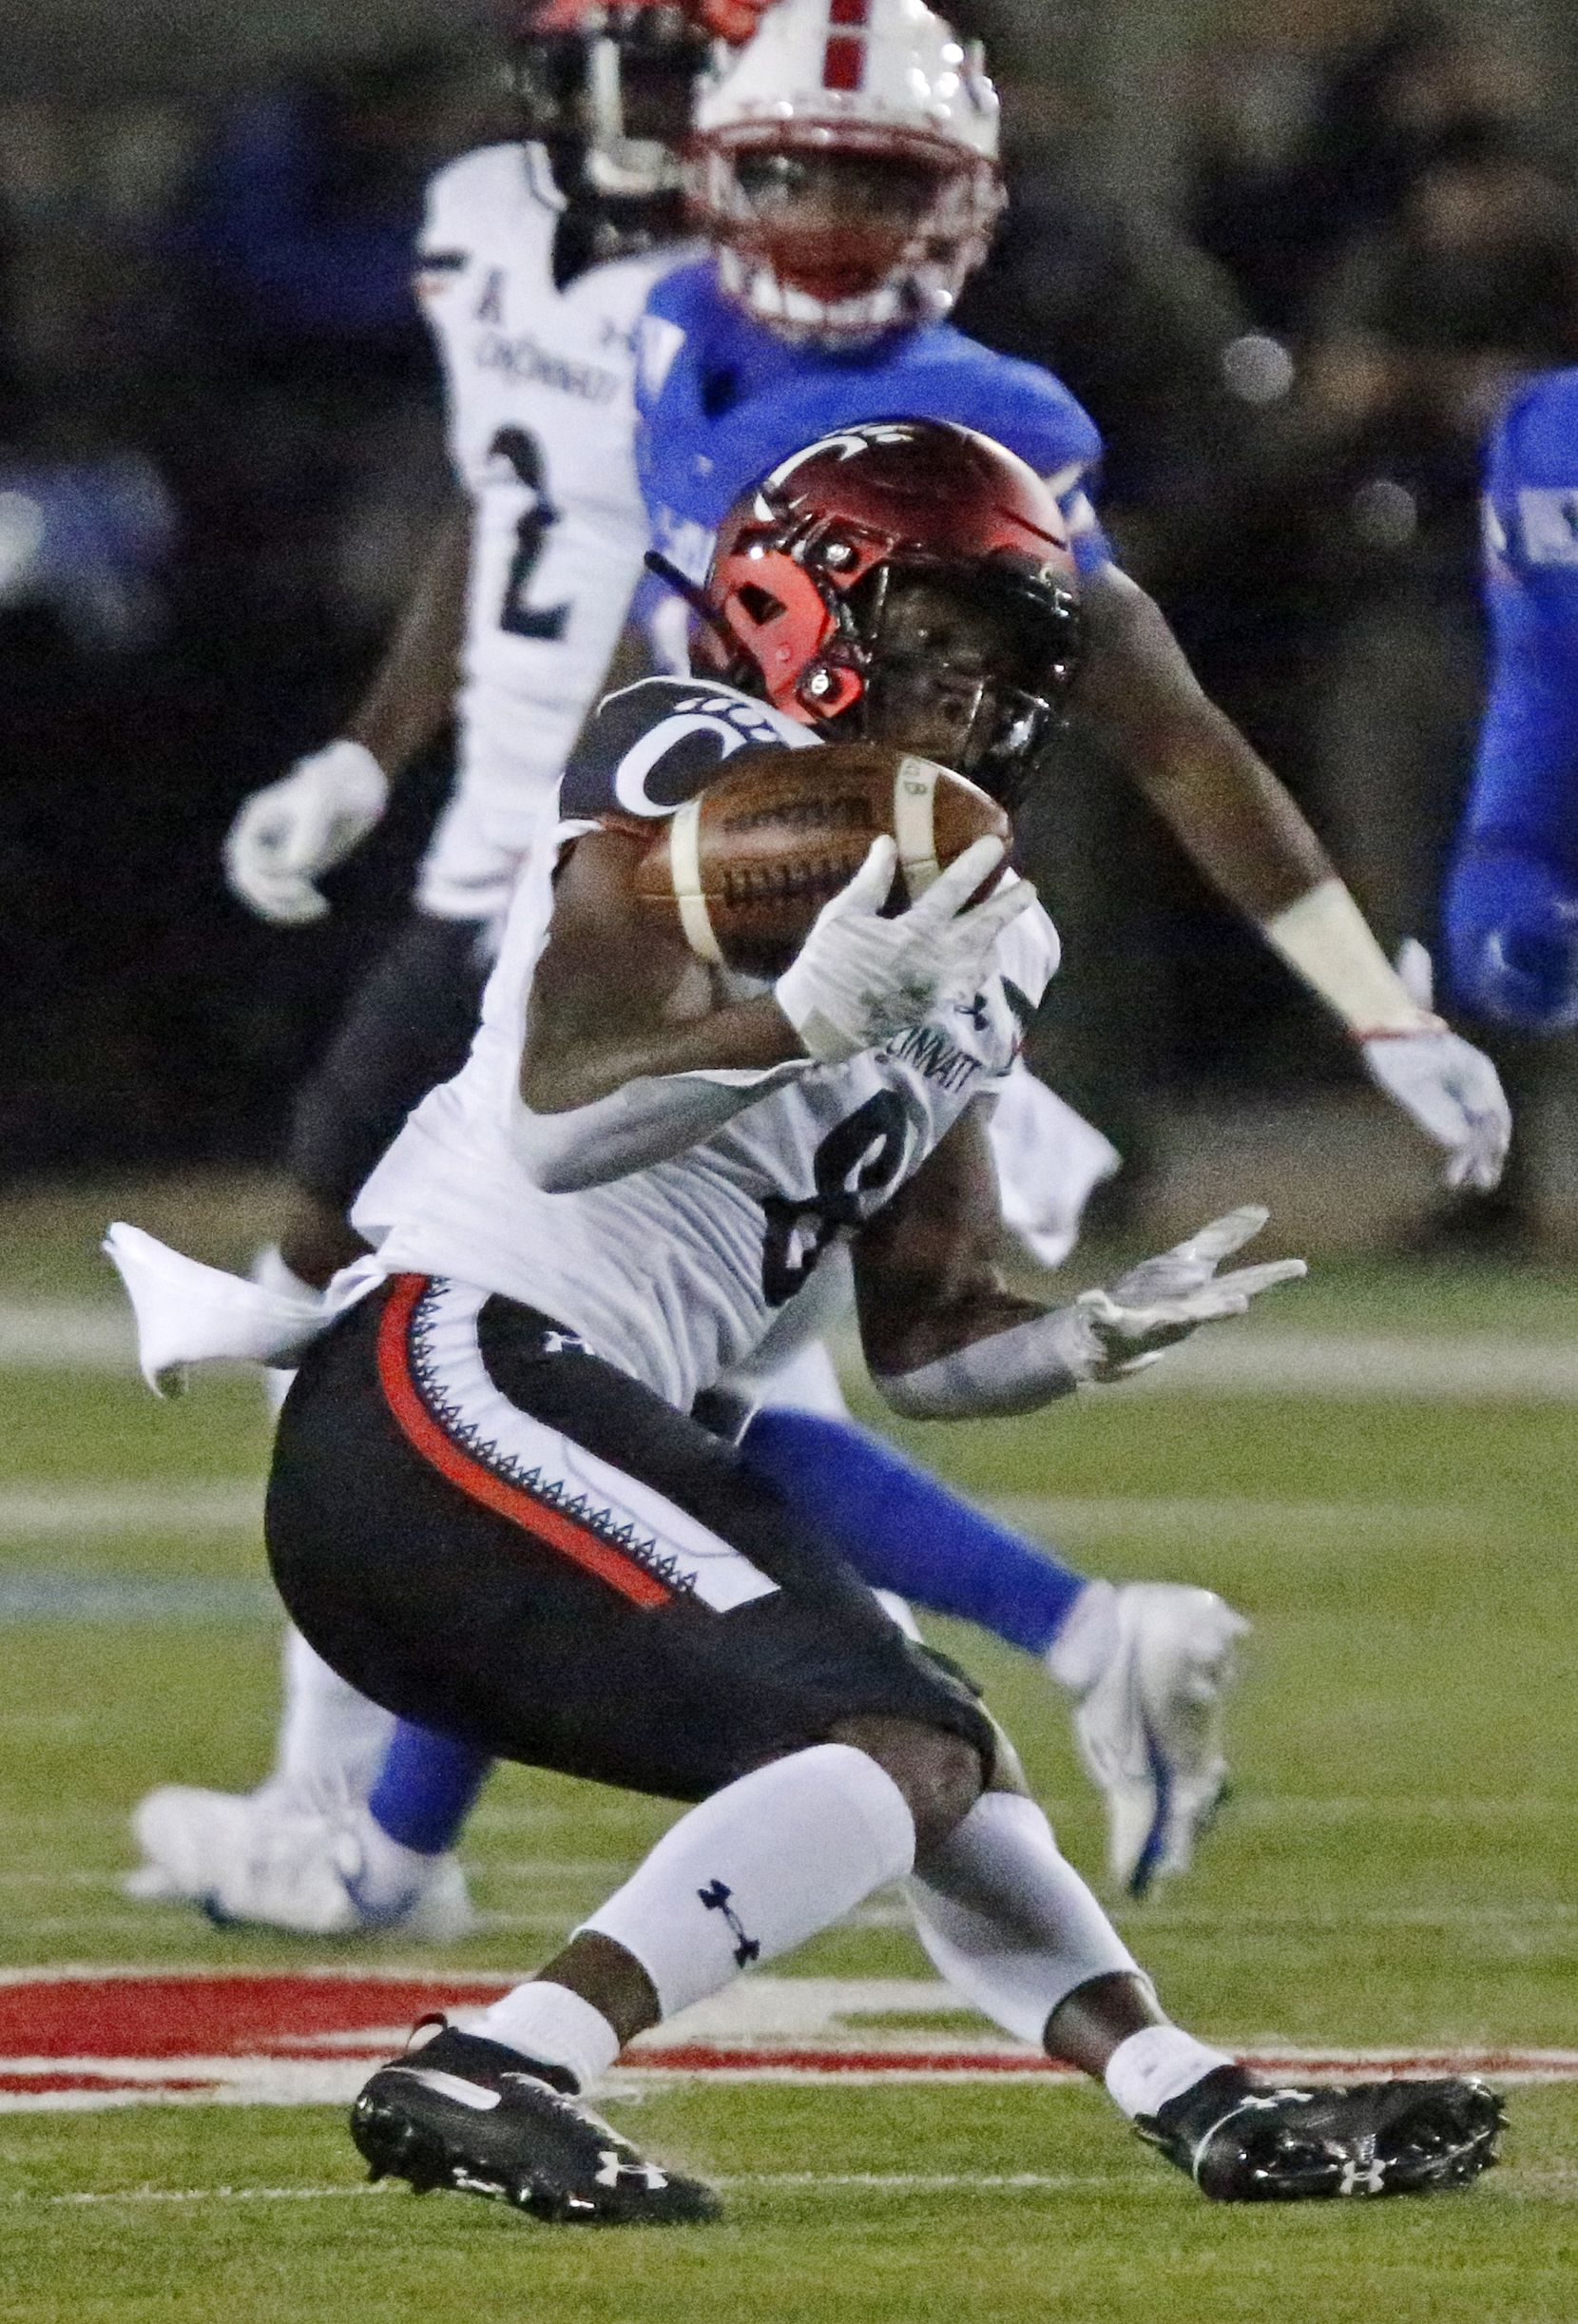 Cincinnati Bearcats wide receiver Michael Young Jr. (8) was unable to hang onto this pass during the first half as SMU hosted Cincinati University in an AAC football game at Ford Stadium in Dallas on Saturday night, October 24, 2020. (Stewart F. House/Special Contributor)